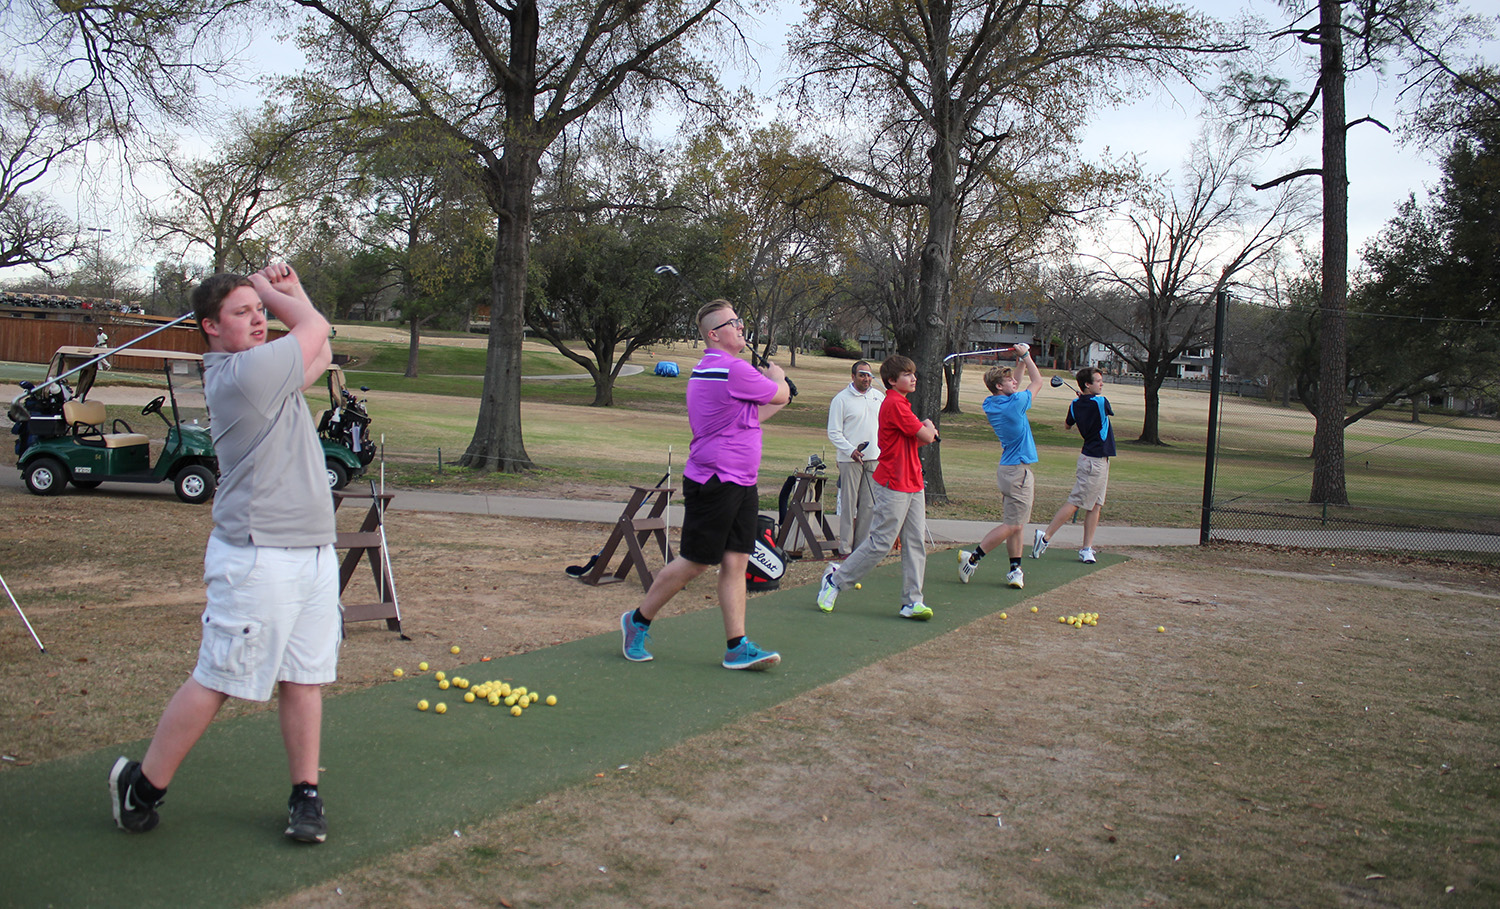 Junior Brock Potenzo, Freshman Stirling Clay, Freshman Sam Hall, Junior Alex Jordan and Senior Nathan Labenz all make the perfect swing with Coach Donavan Solis watching. The team is preparing for Regionals later this month.